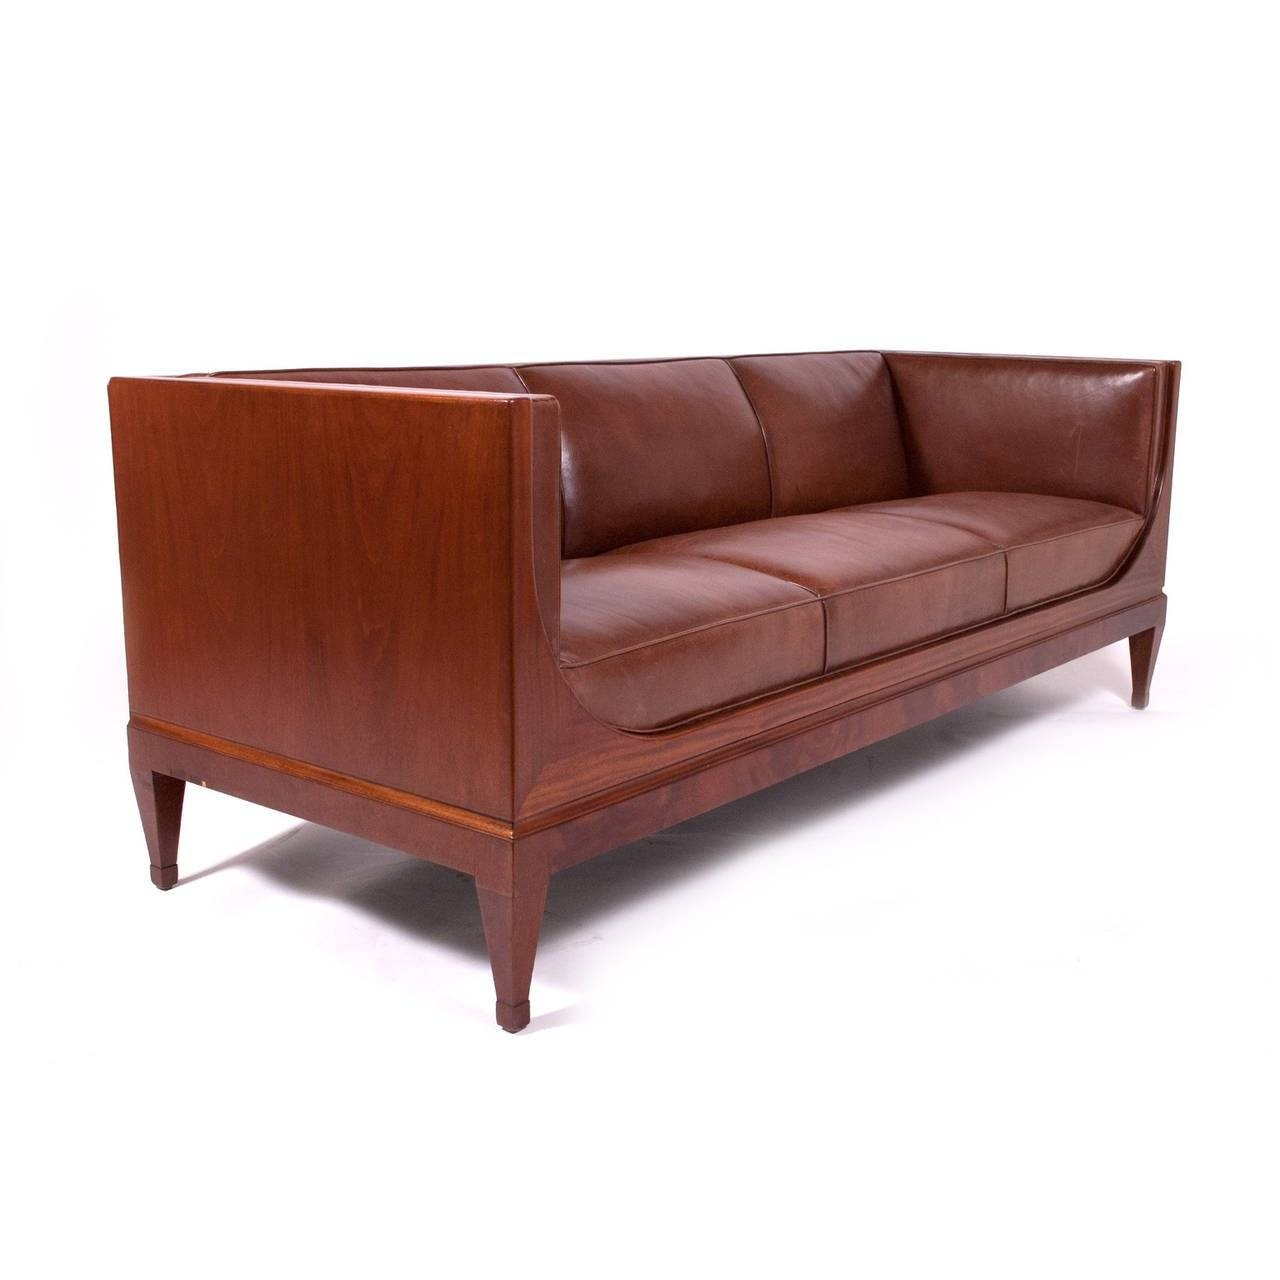 Classic Sofafrits Henningsen, 1930S For Sale At 1Stdibs regarding 1930S Couch (Image 10 of 30)